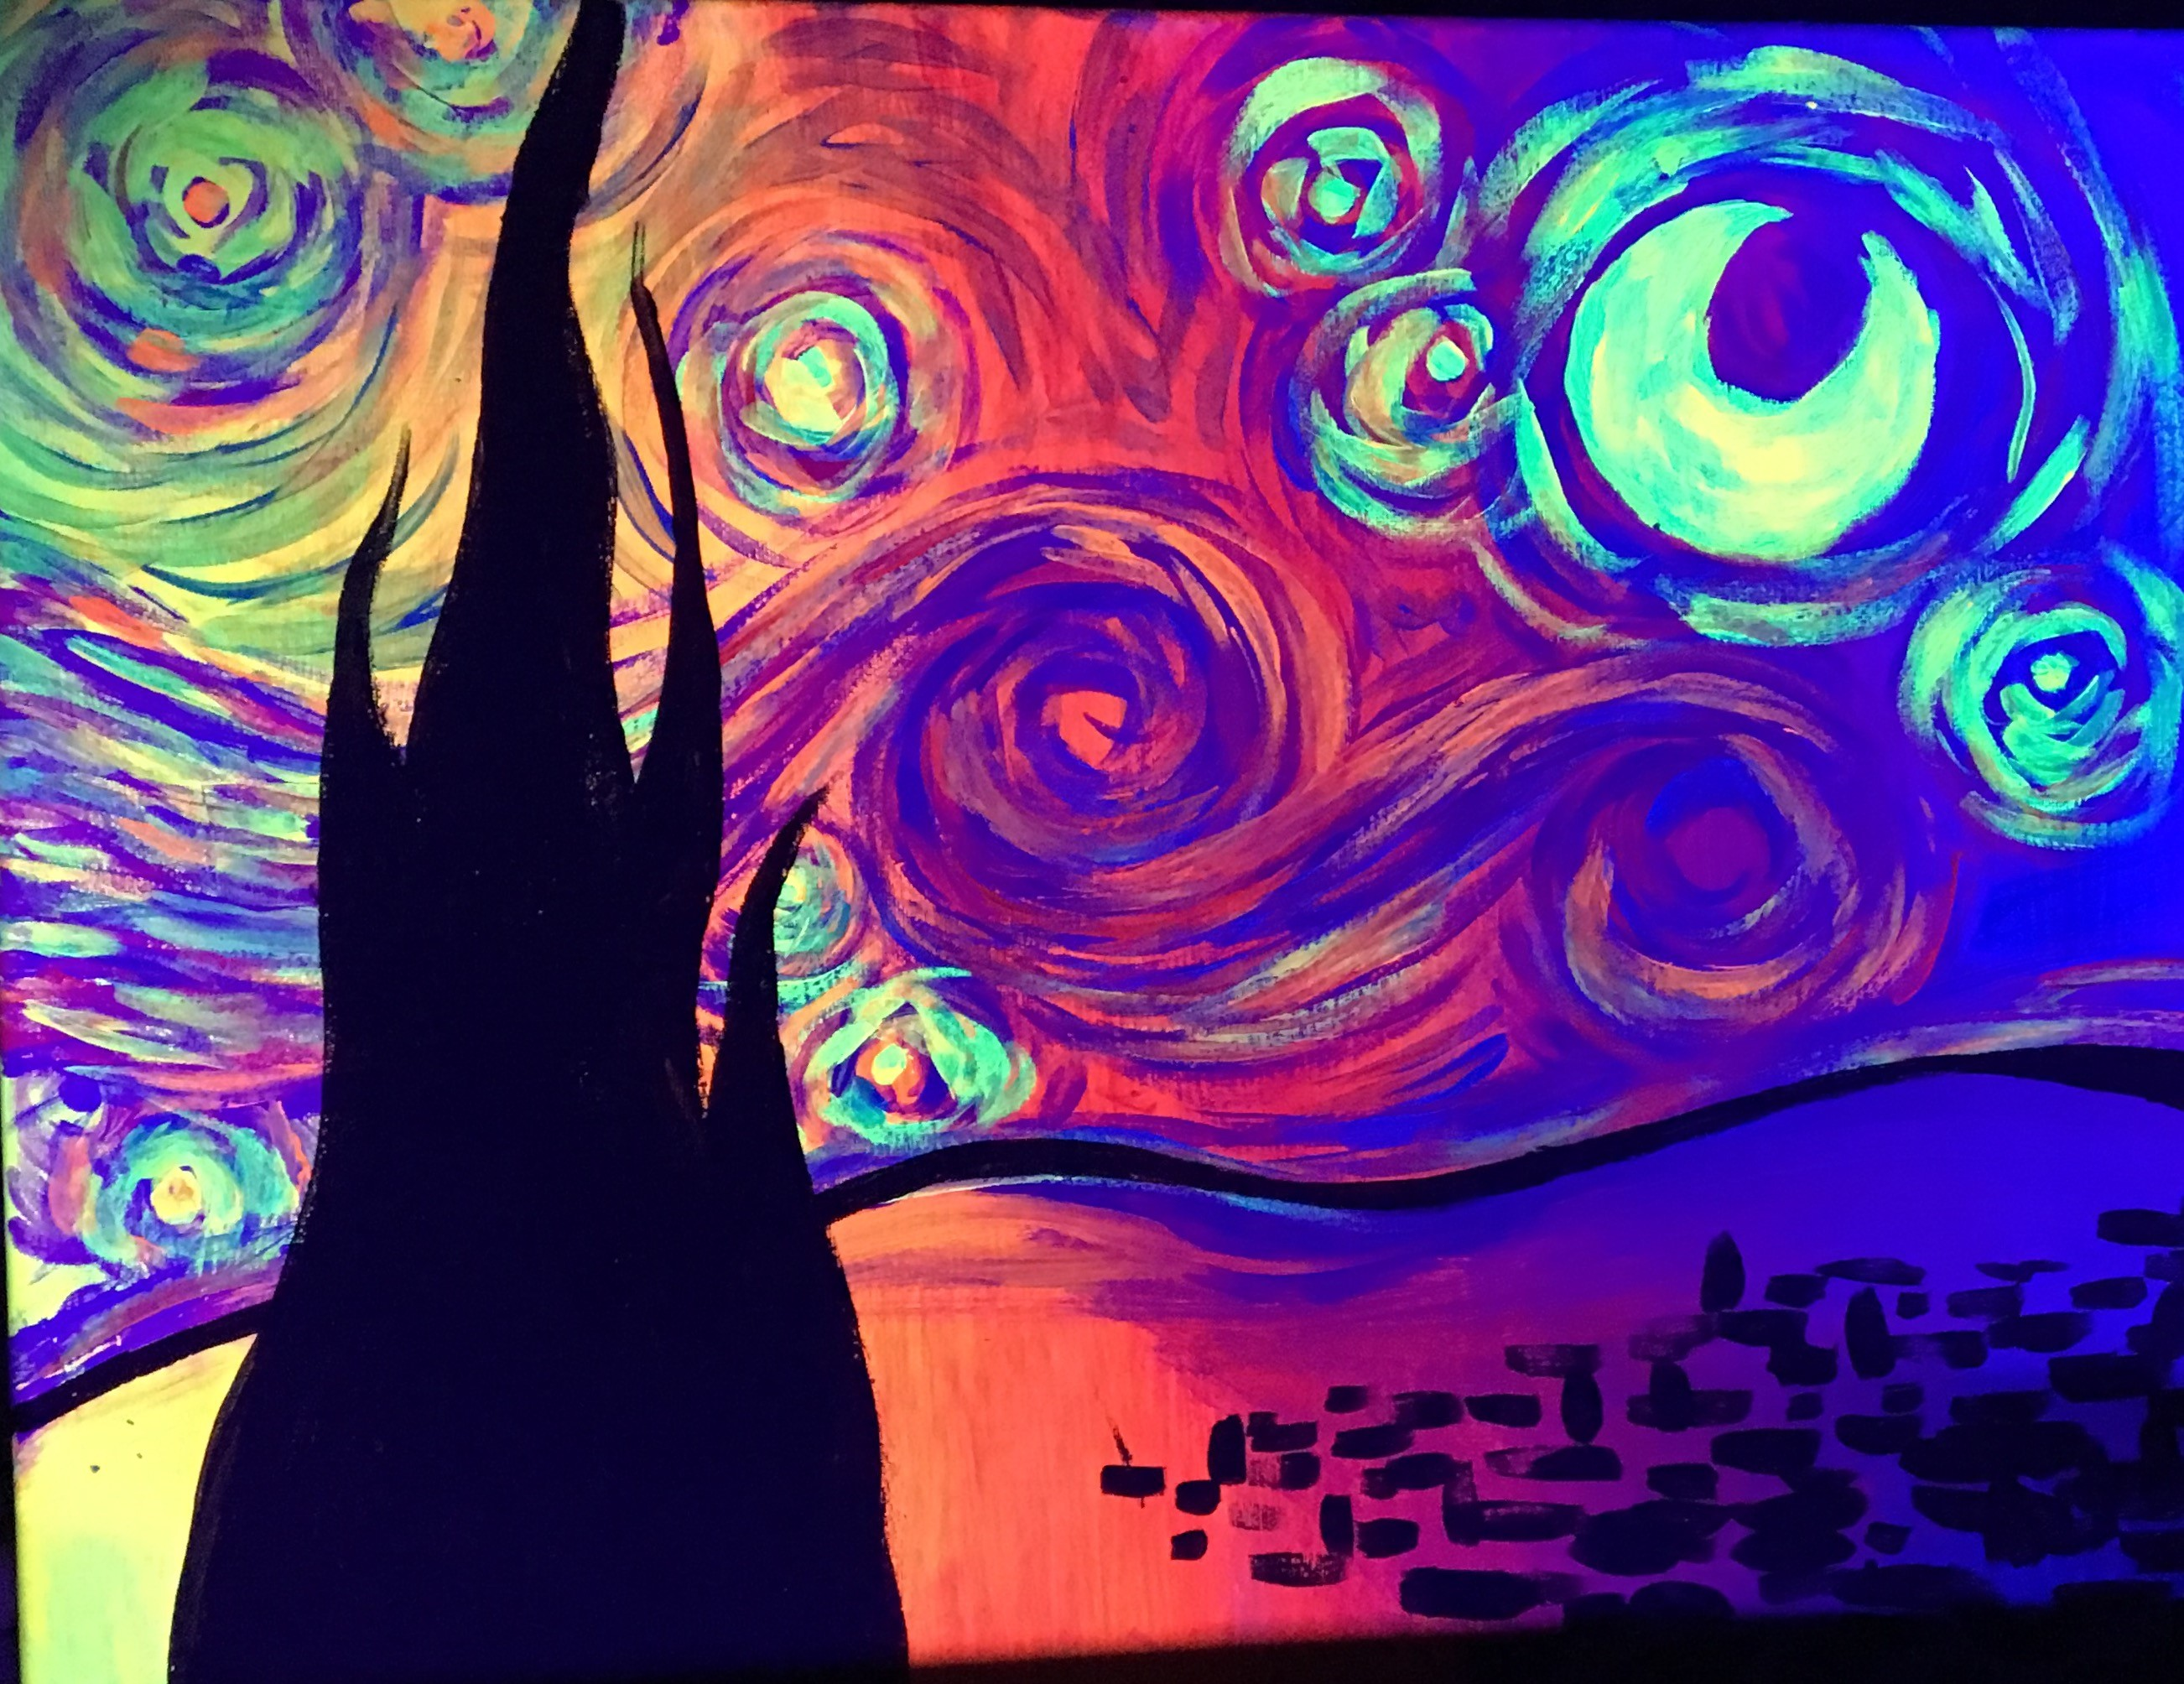 Psychedelic Starry Night - Fri, Nov 24 7PM at Champions